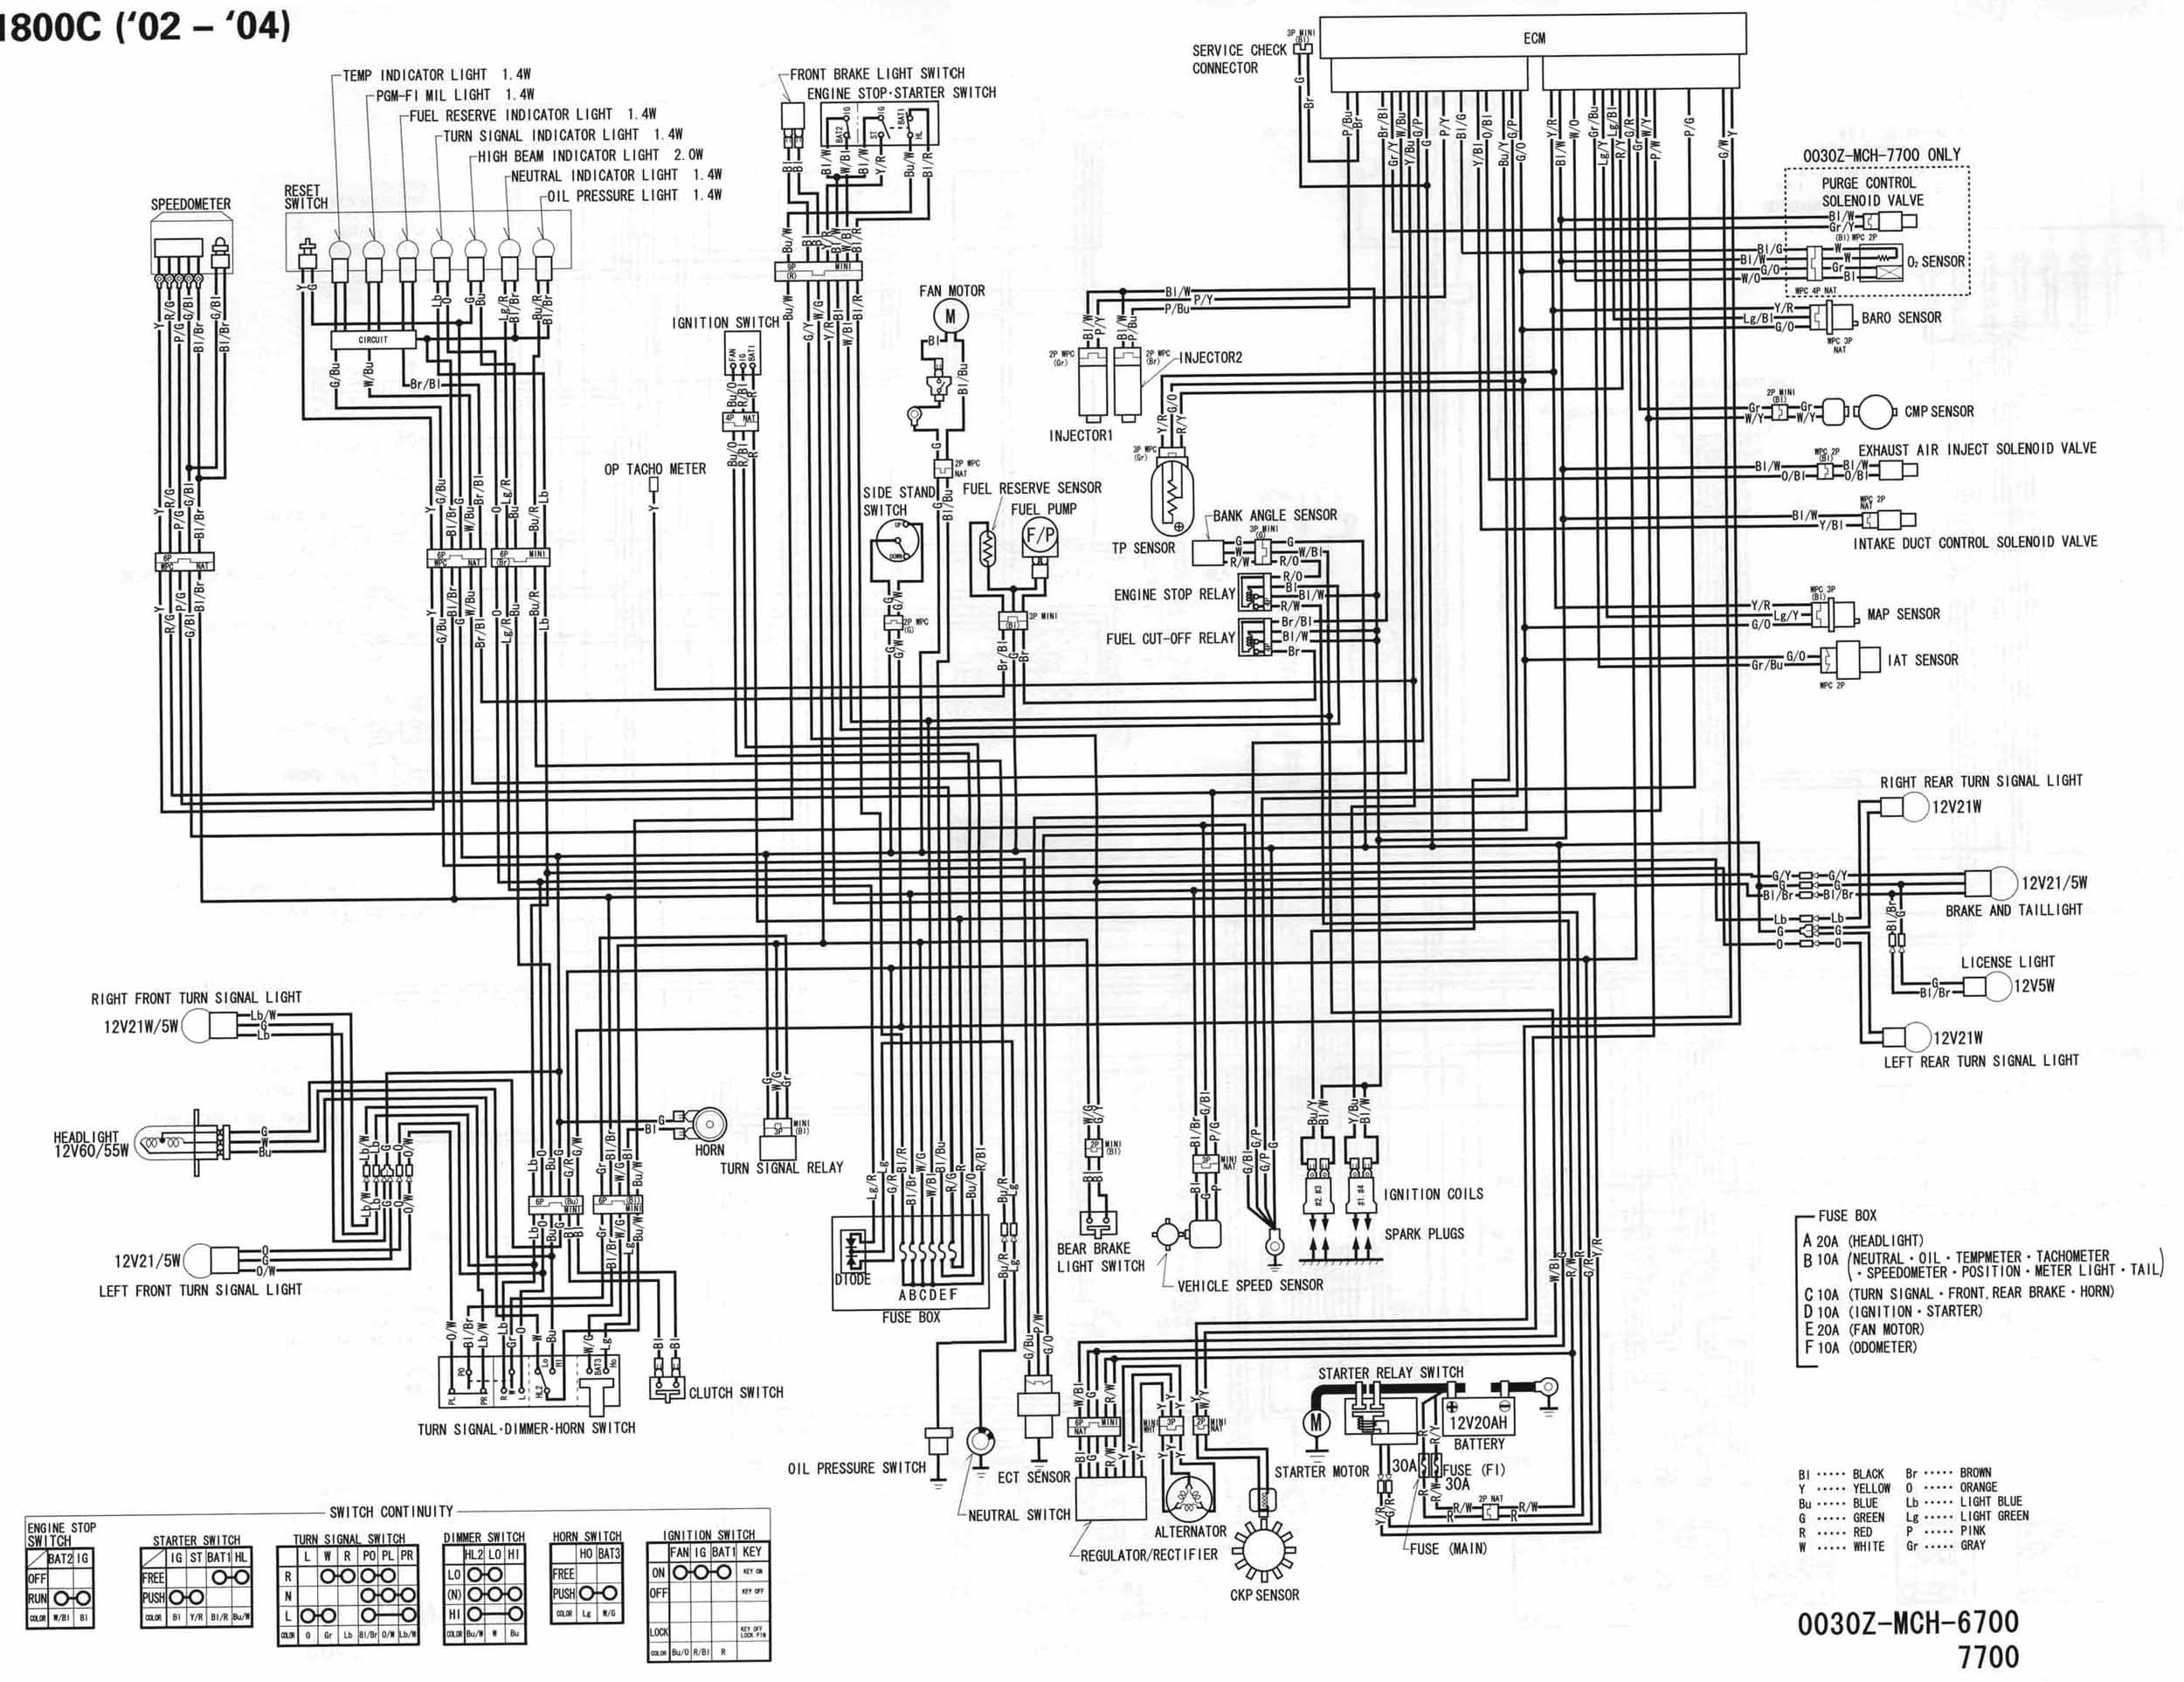 02 04_VTX1800_C_schematic motorcycle wire schematics bareass choppers motorcycle tech pages tachometer wiring diagram for motorcycle at soozxer.org